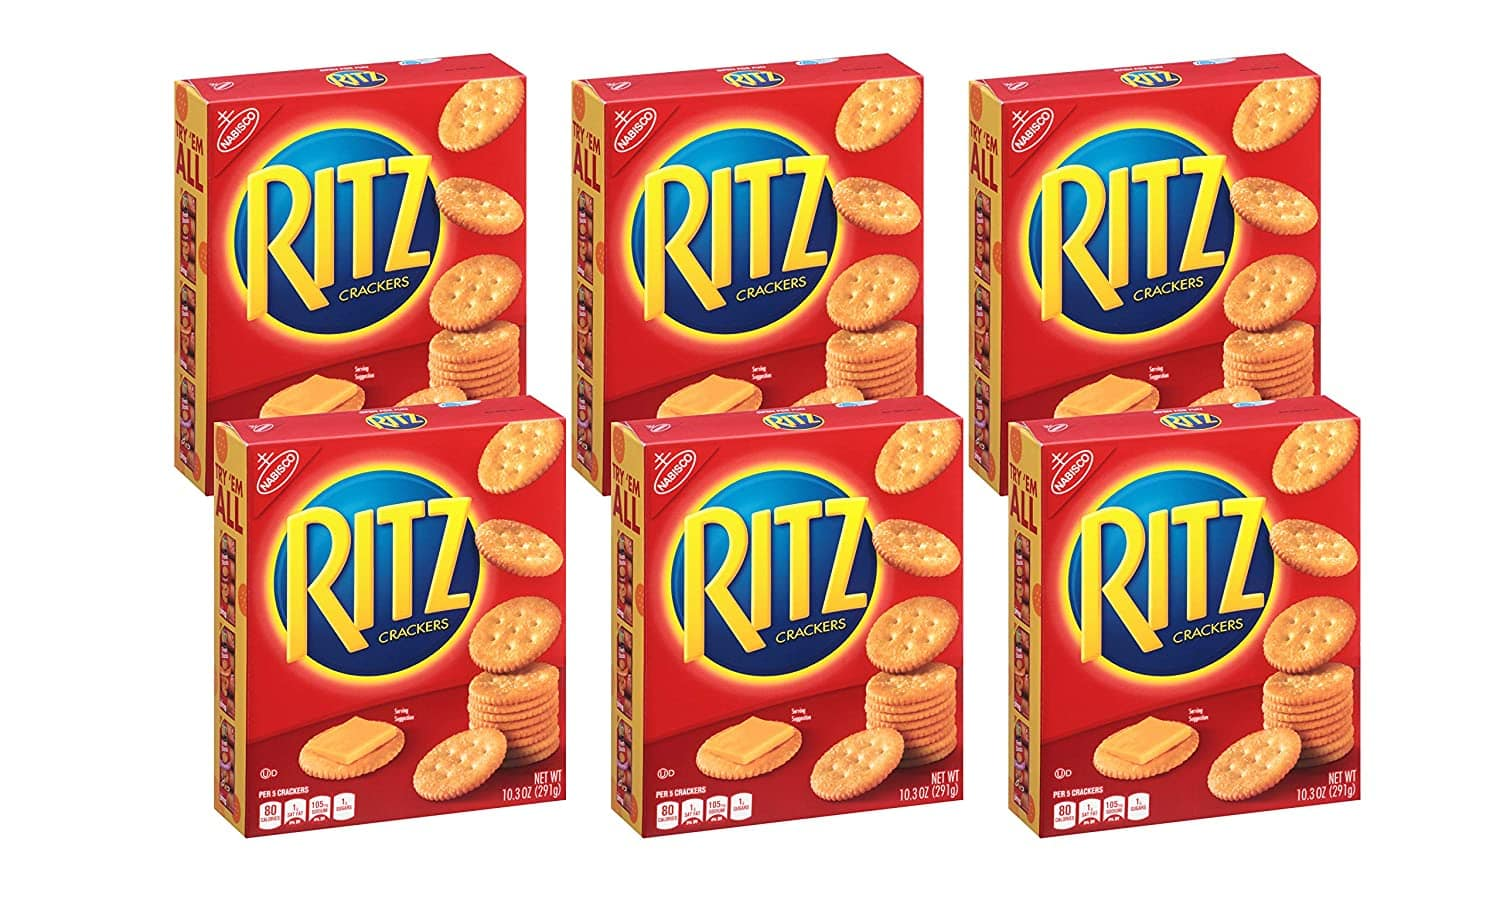 6-Pack of 10.3-Oz Ritz Original Crackers $5.40 w/ Subscribe & Save